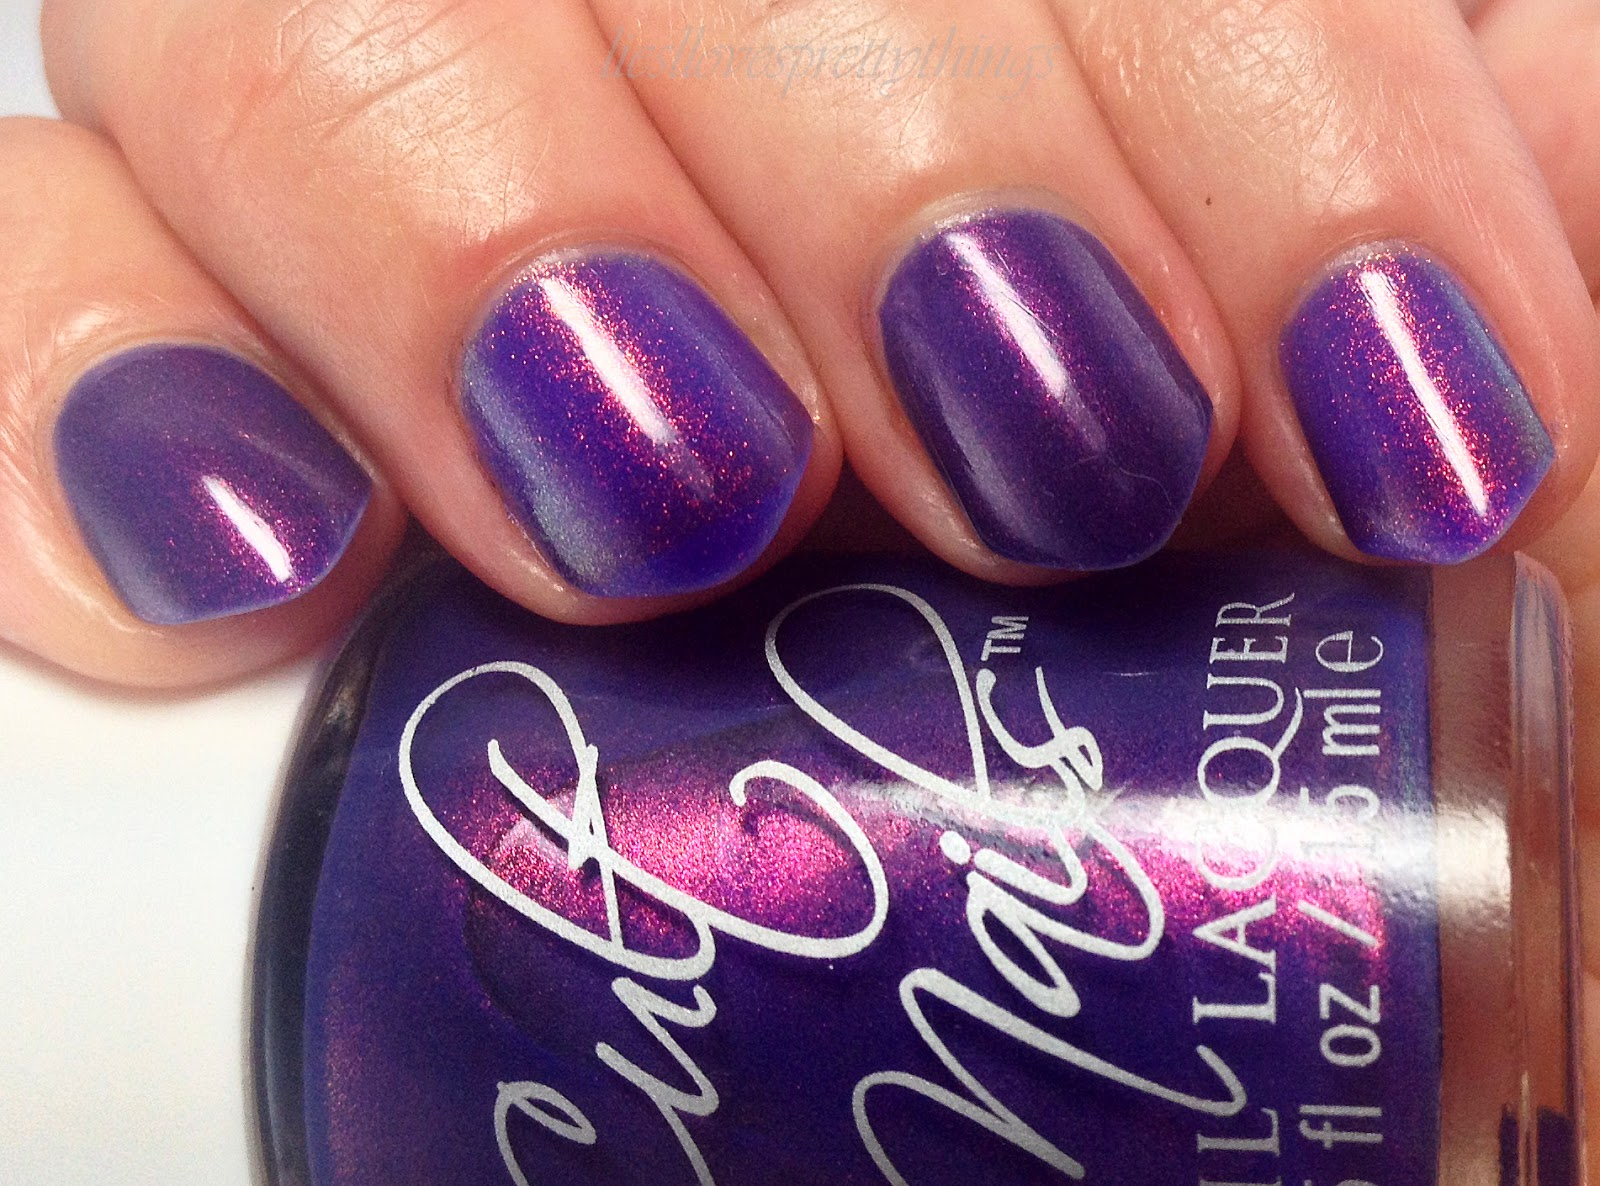 Cult Nails Flushed/Max Factor Fantasy Fire Comparison